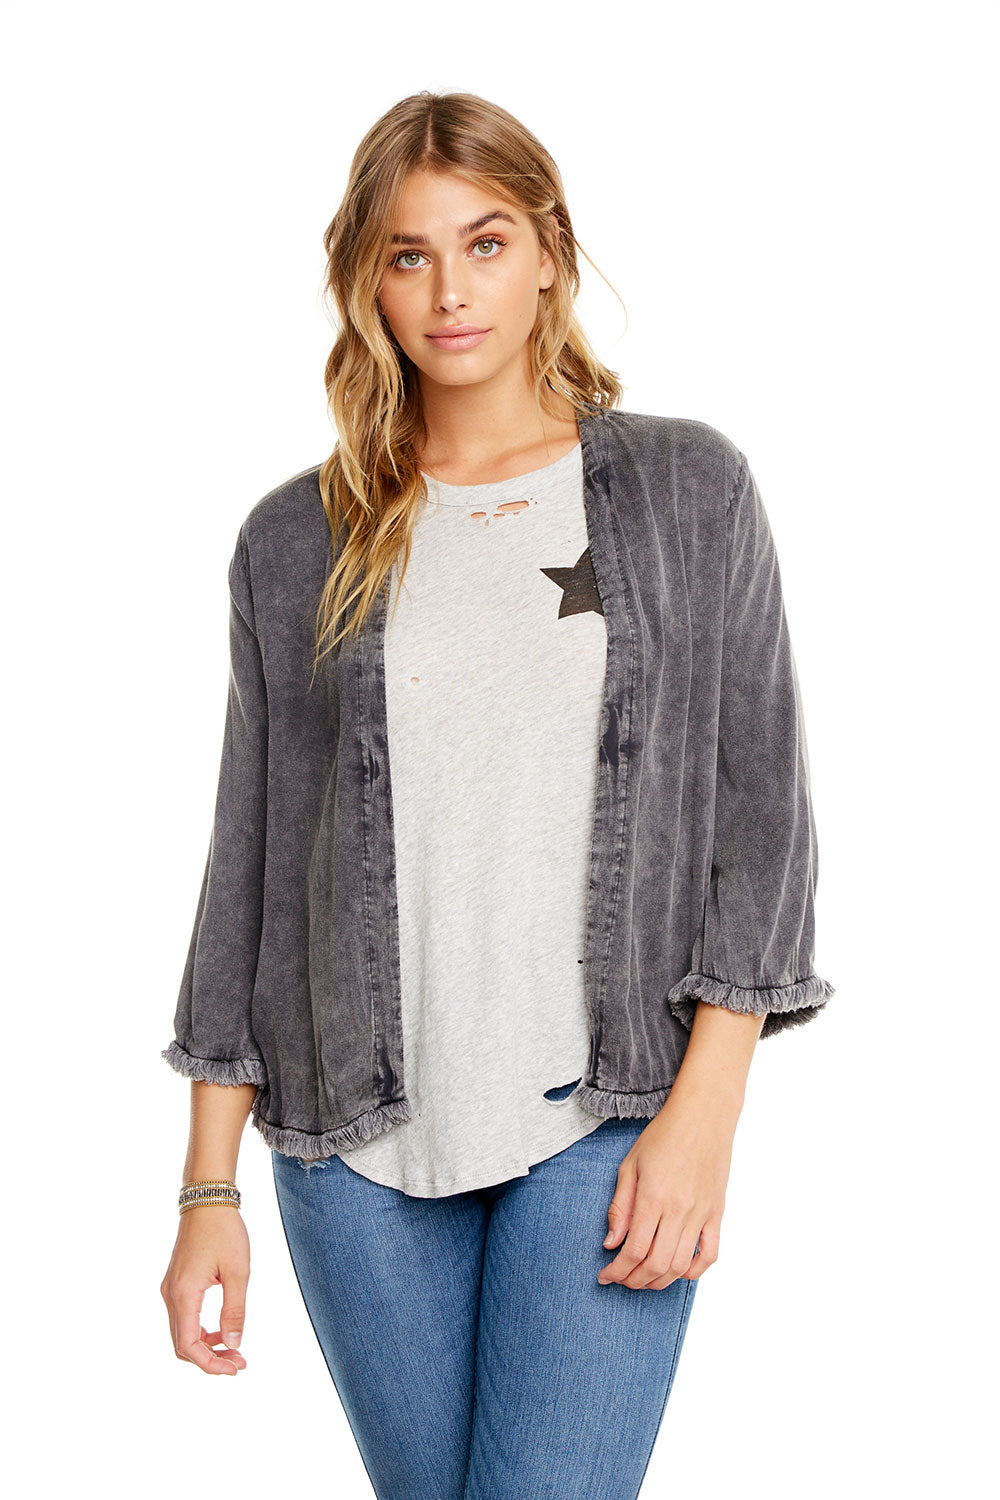 HEIRLOOM WOVENS SHRUNKEN KIMONO W/ FRAYED EDGE WOMENS - chaserbrand